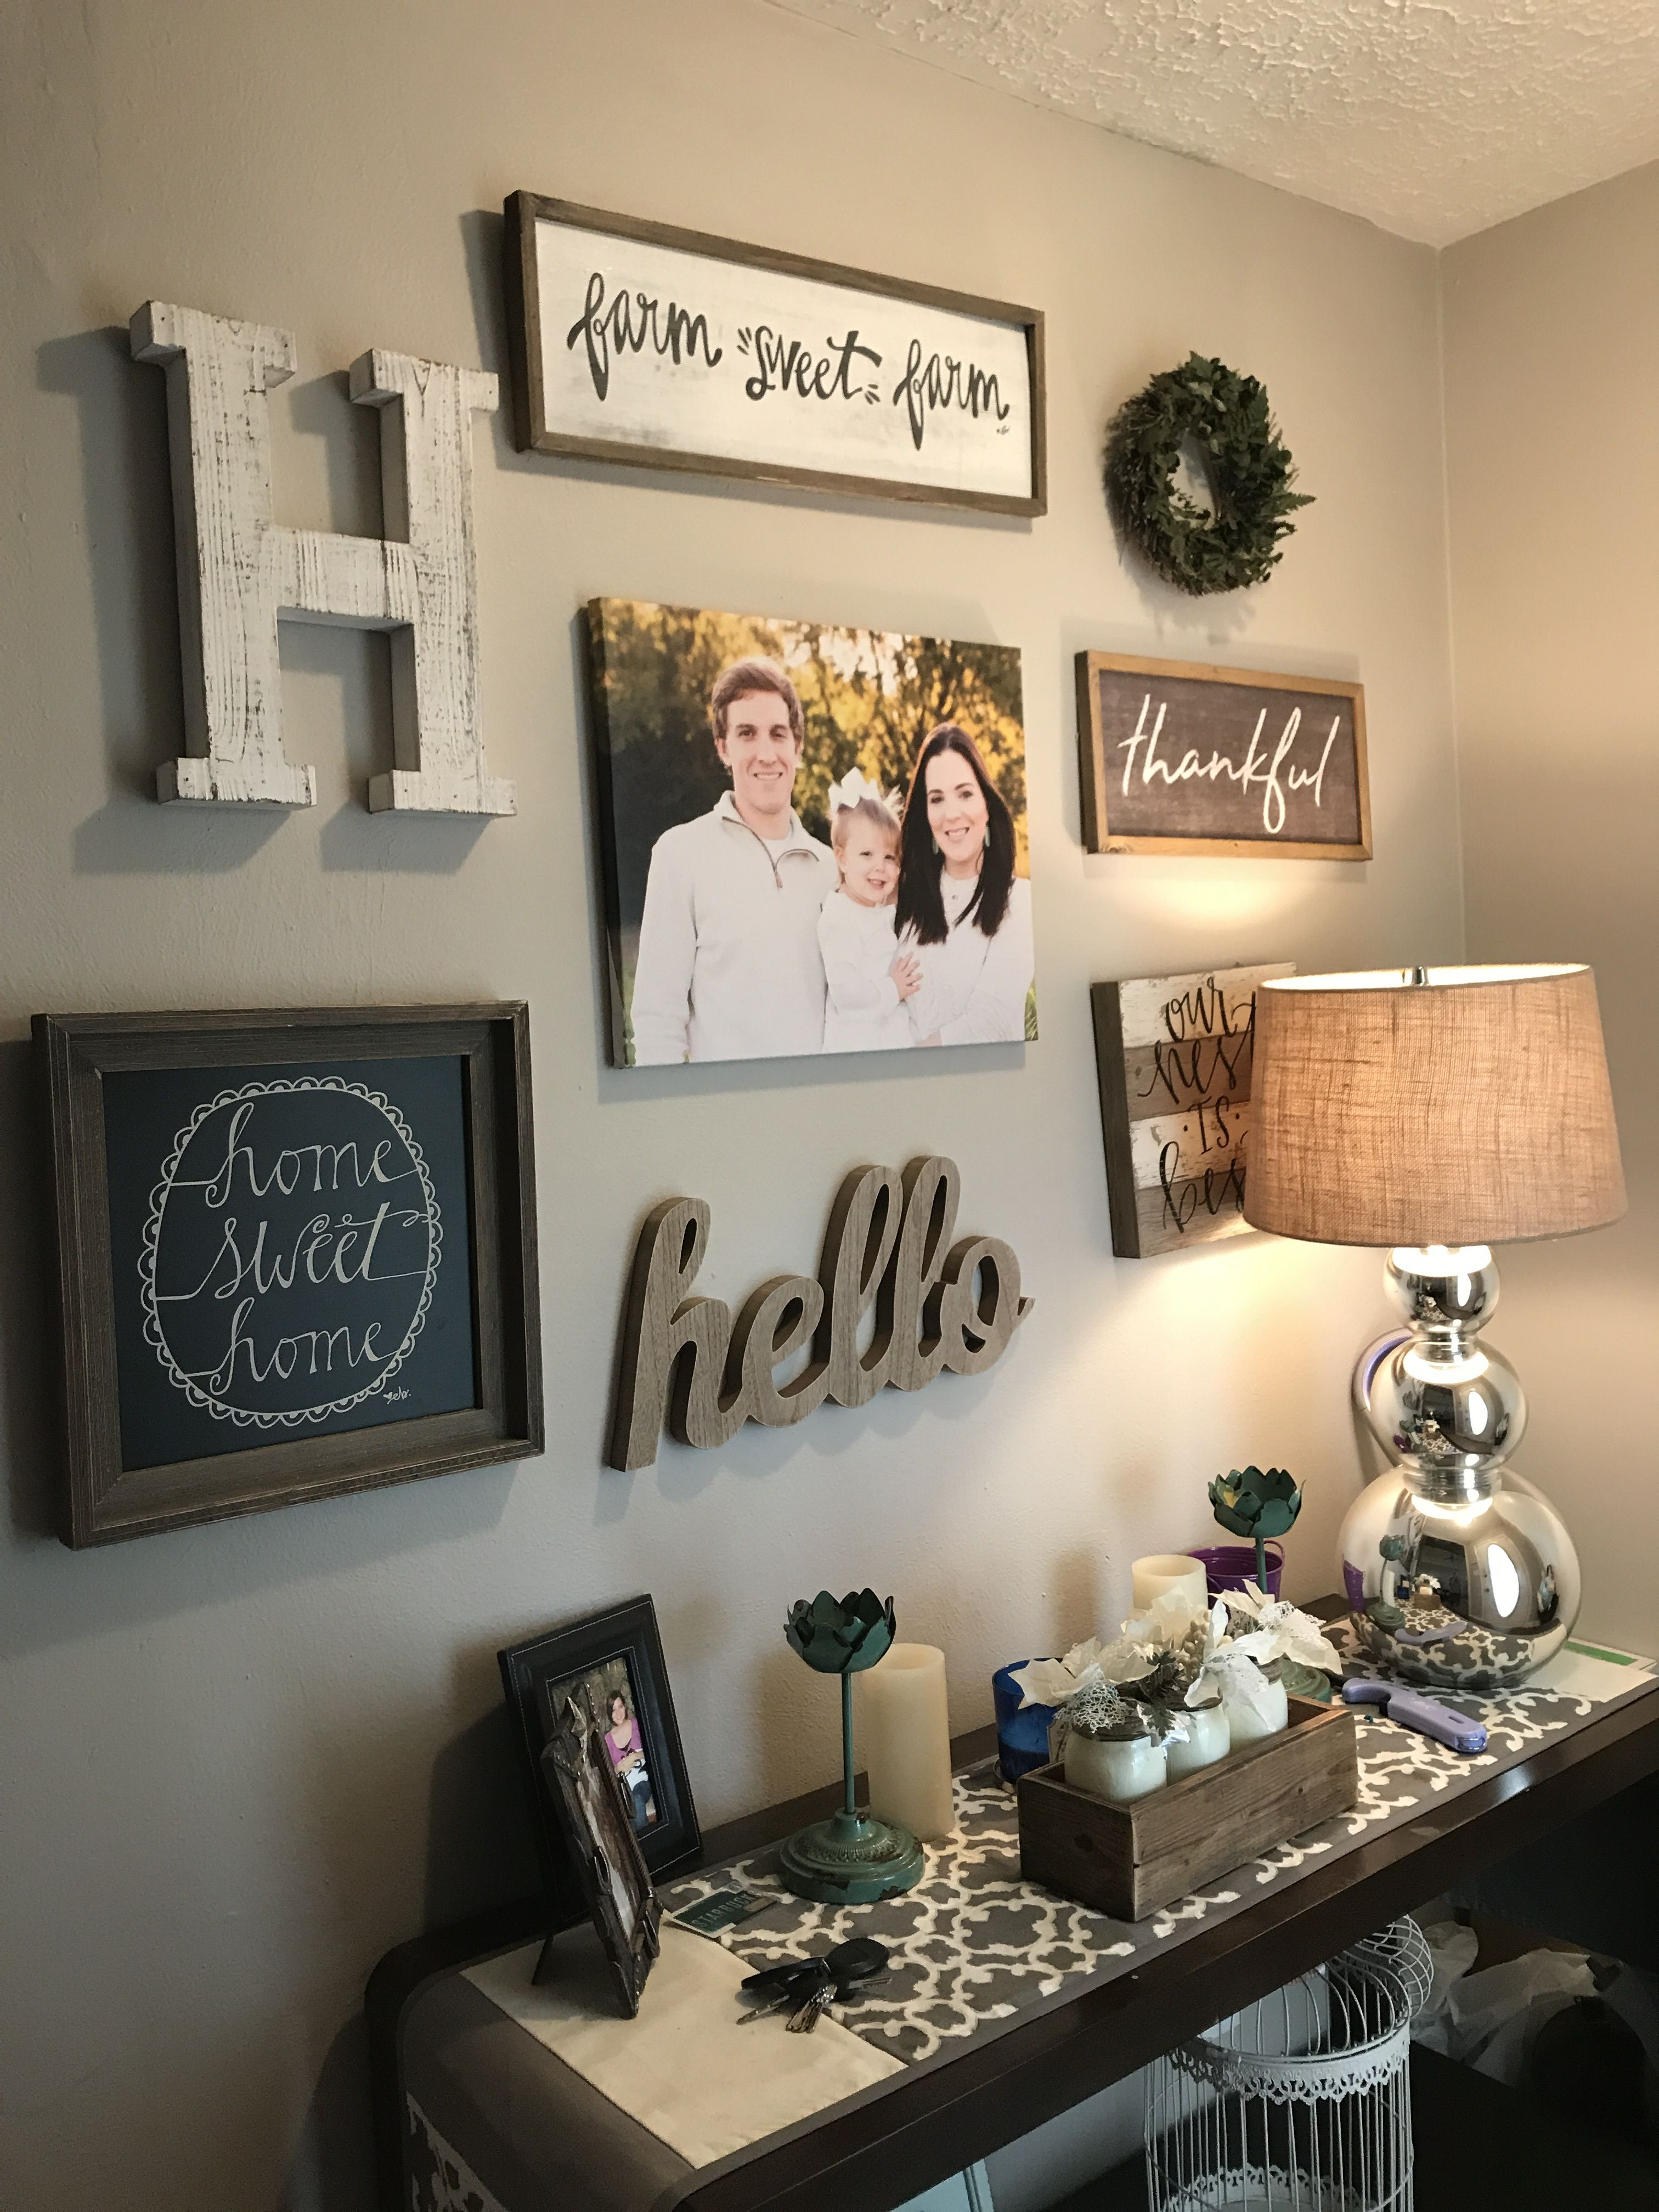 Entryway Decor How To Decorate Room With Simple Things Modern Bedrooms In 2020 Farmhouse Decor Living Room Farm House Living Room Rustic Farmhouse Living Room